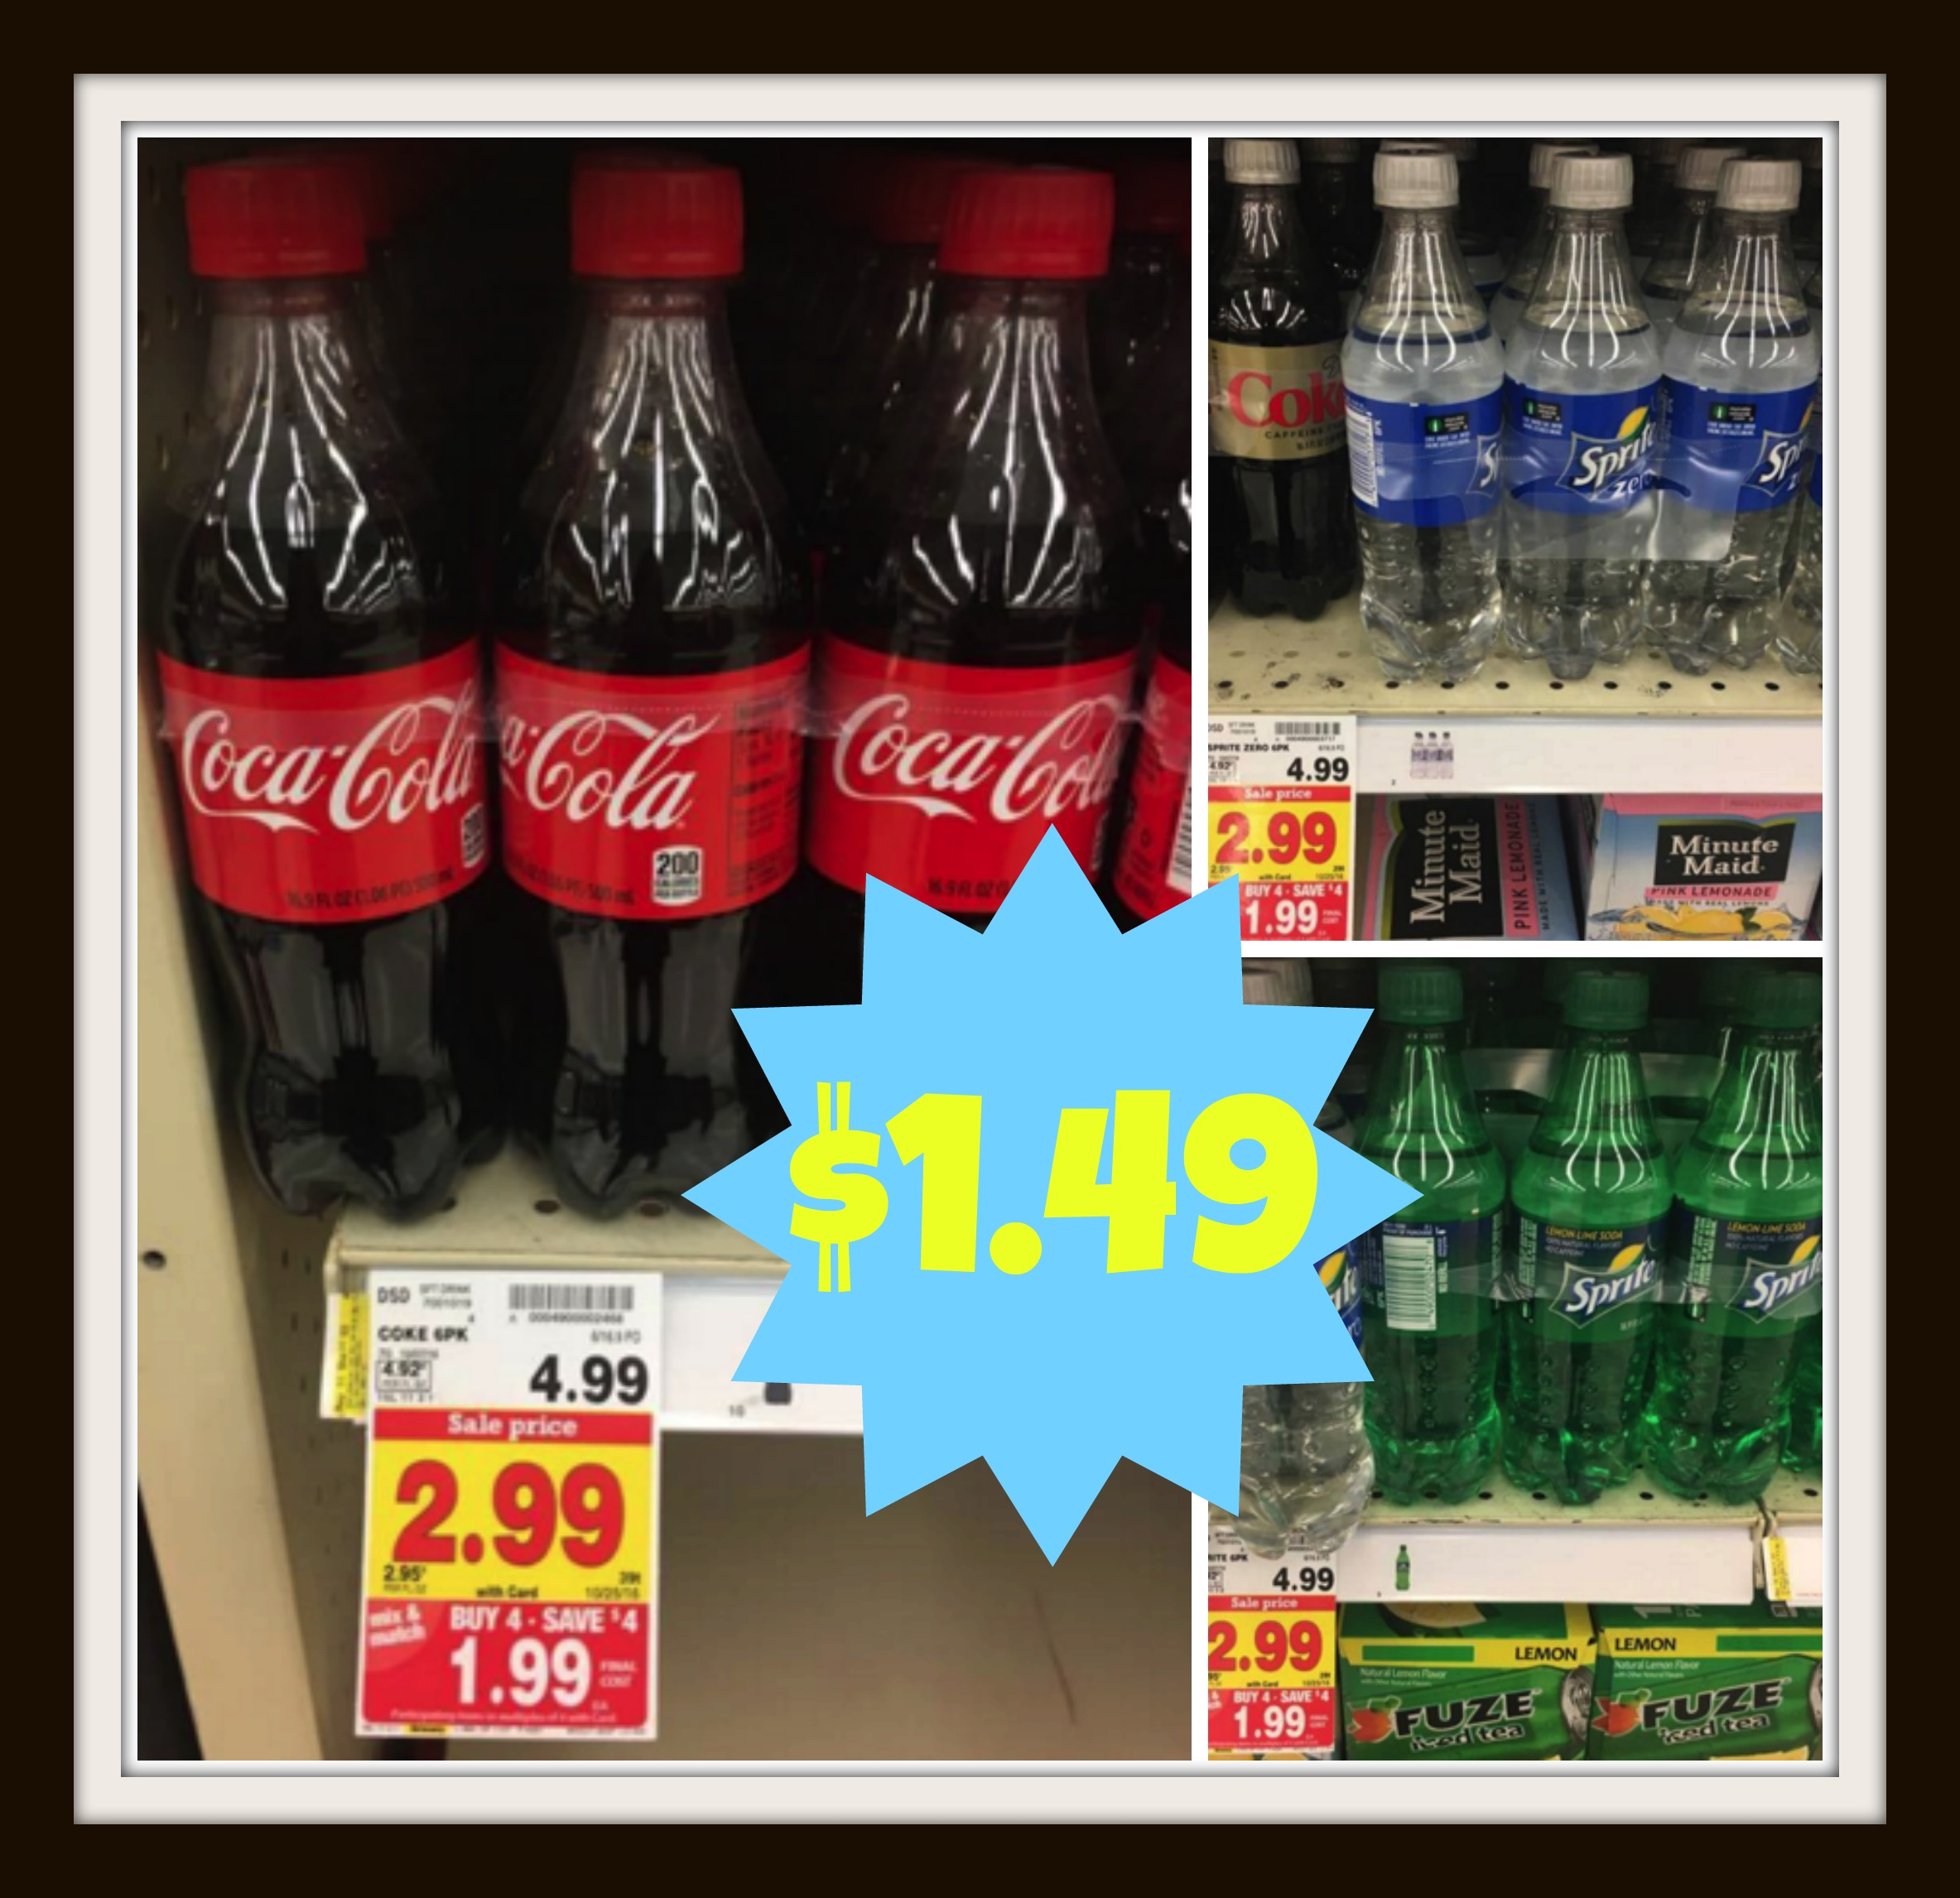 Get CocaCola Products at Kroger for ONLY 149 each Reg